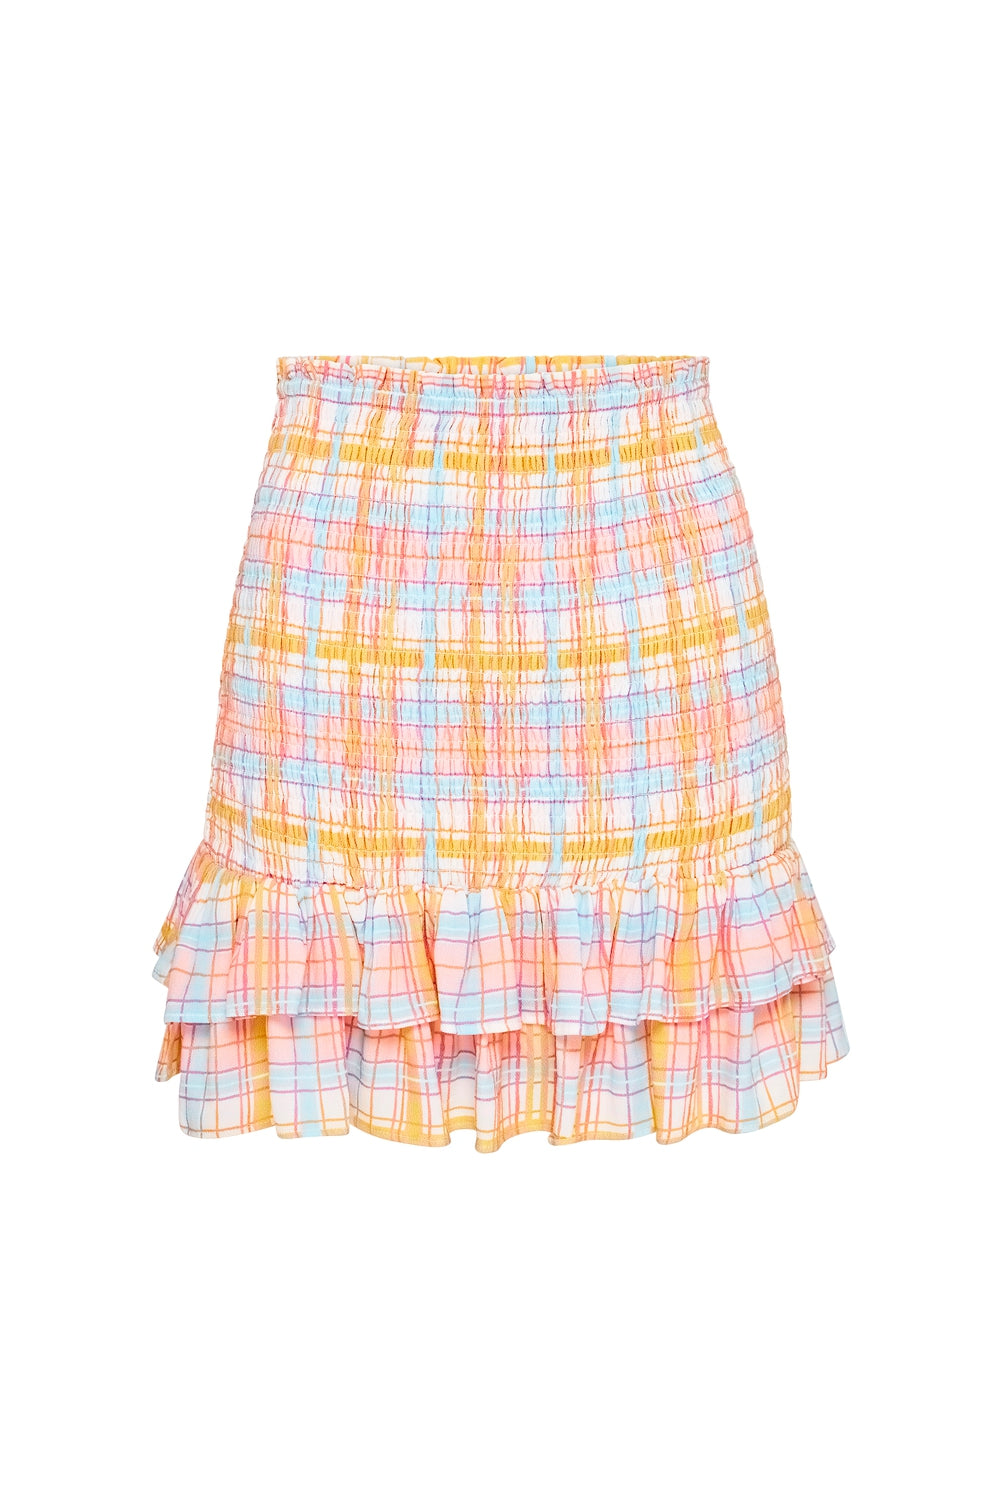 Rafa Mini Skirt in Tutti Frutti